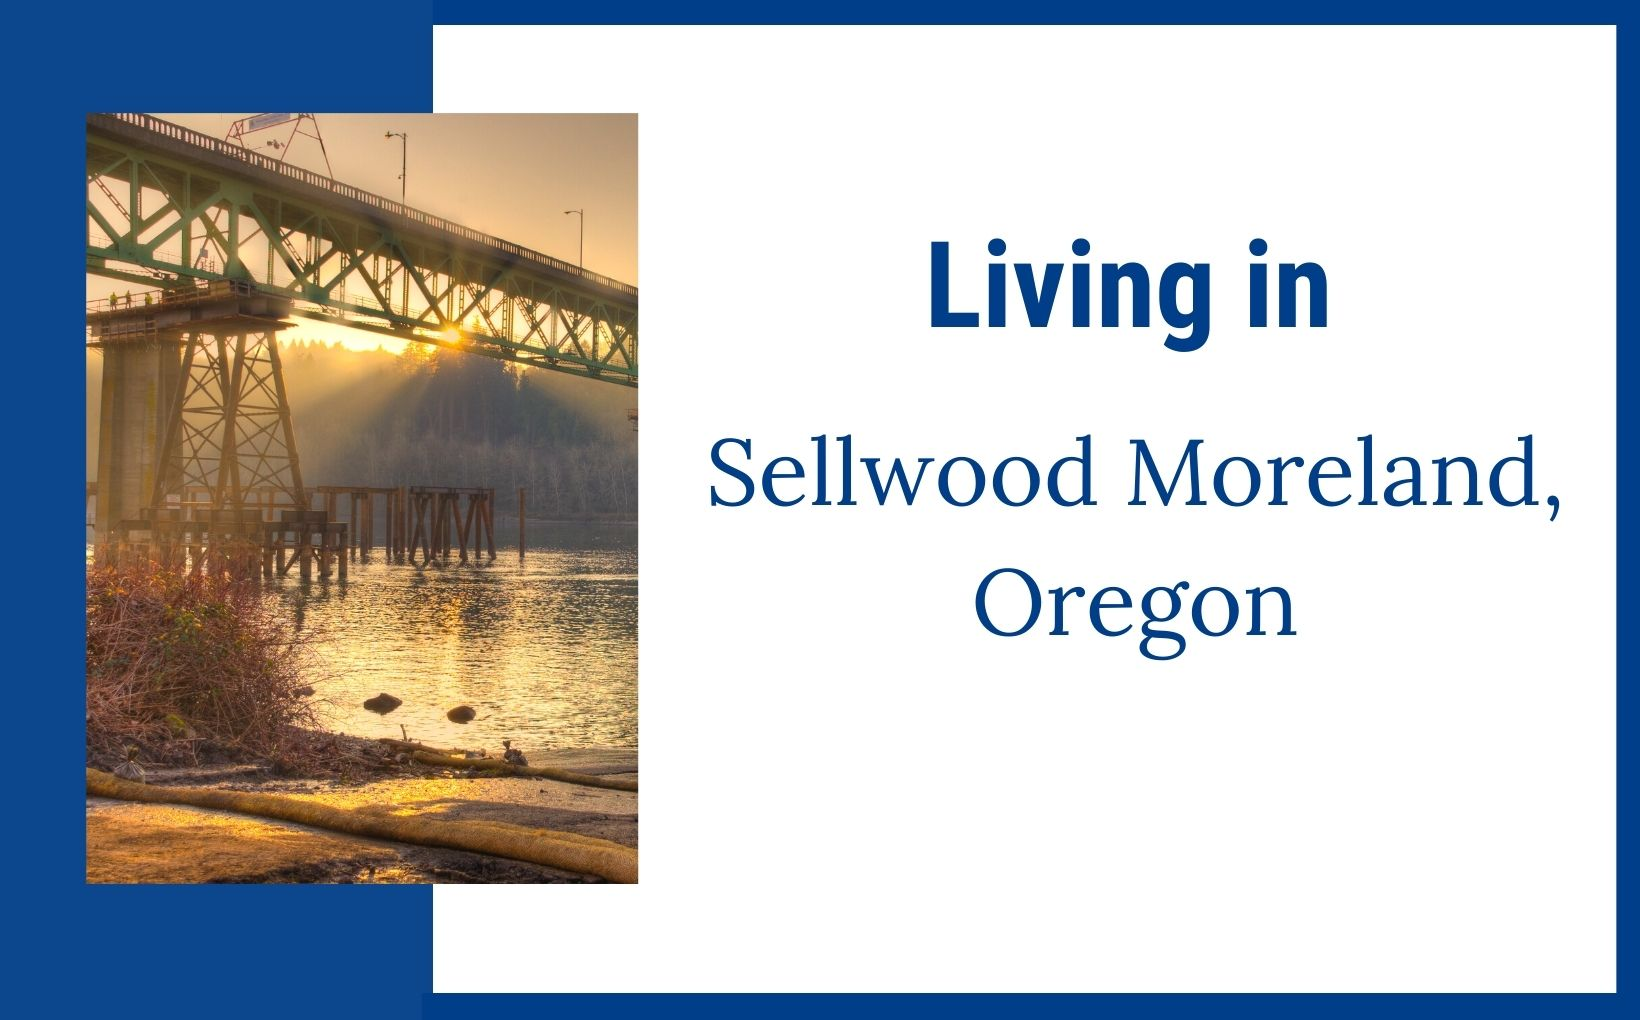 Living in Sellwood Moreland Oregon feature image